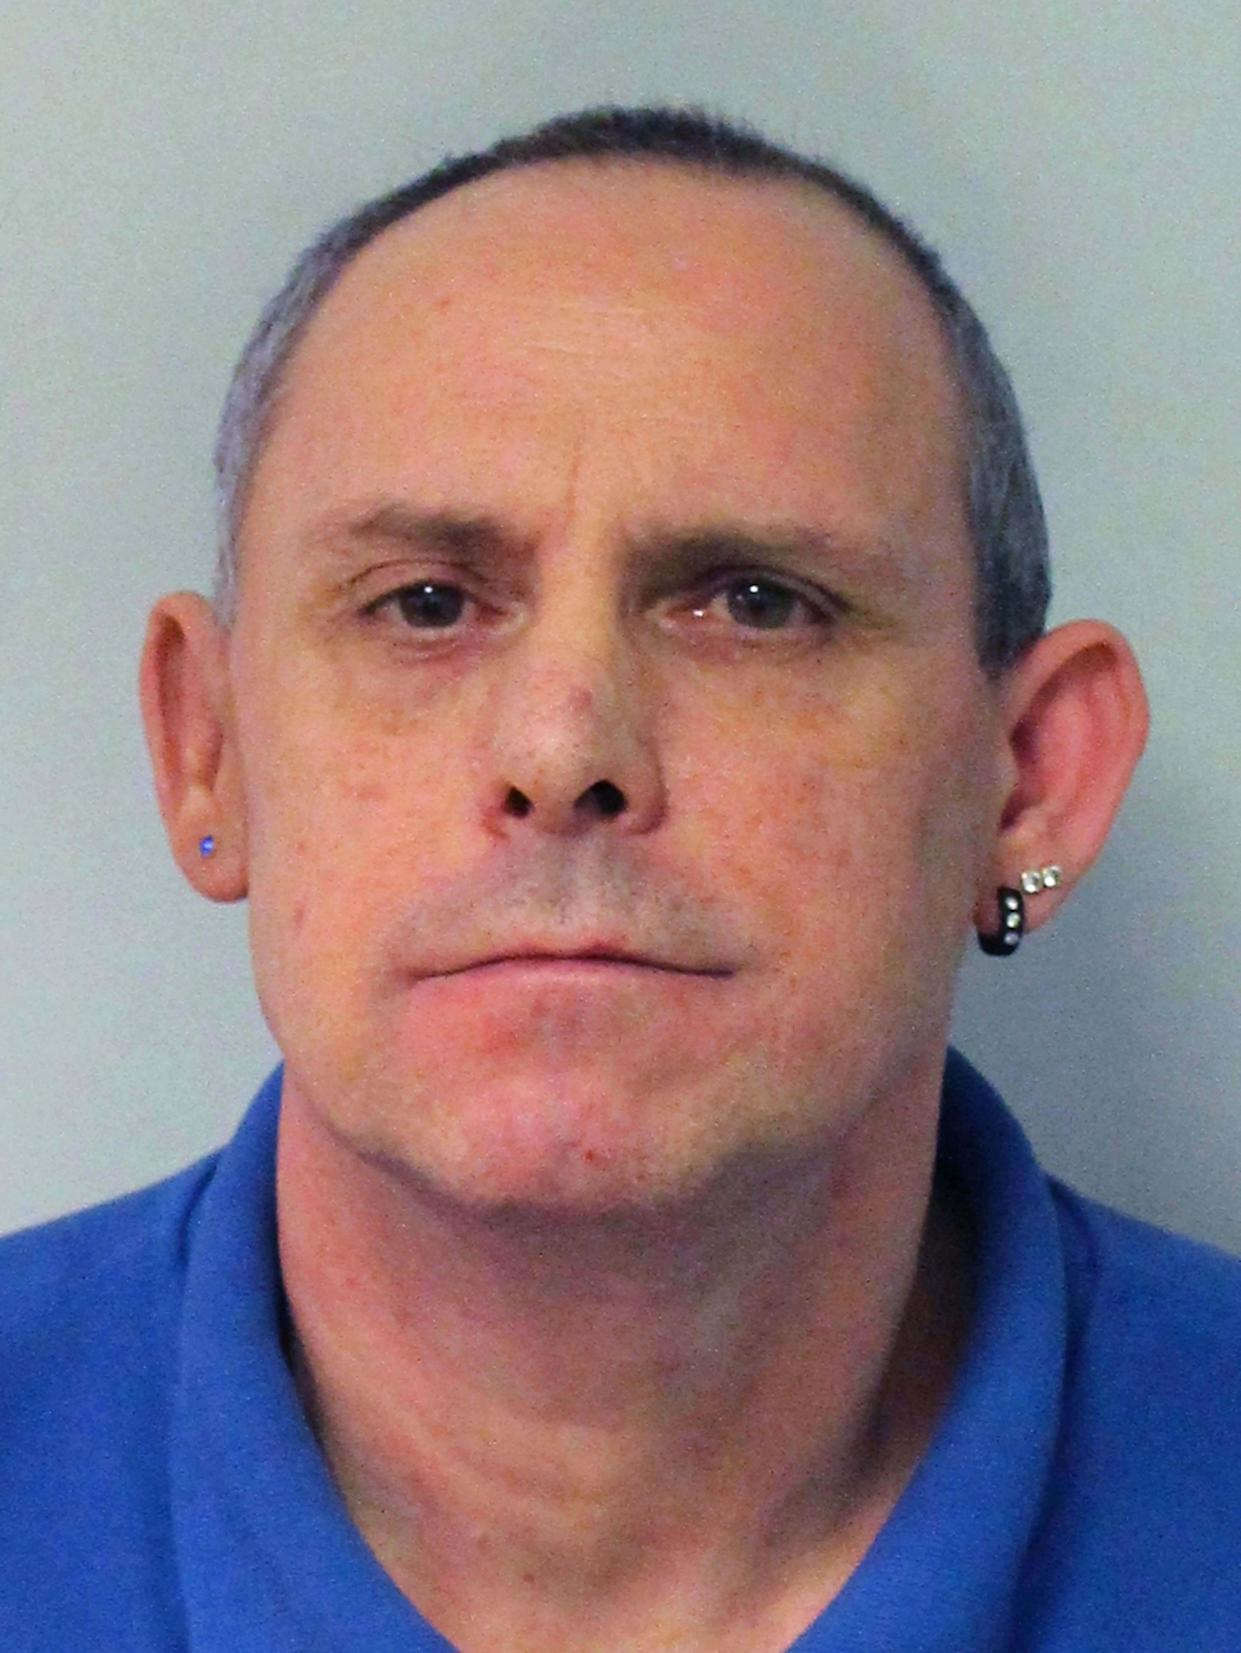 Paedophile Paul Farrell was given a life sentence with a minimum term of 18 years. (PA)